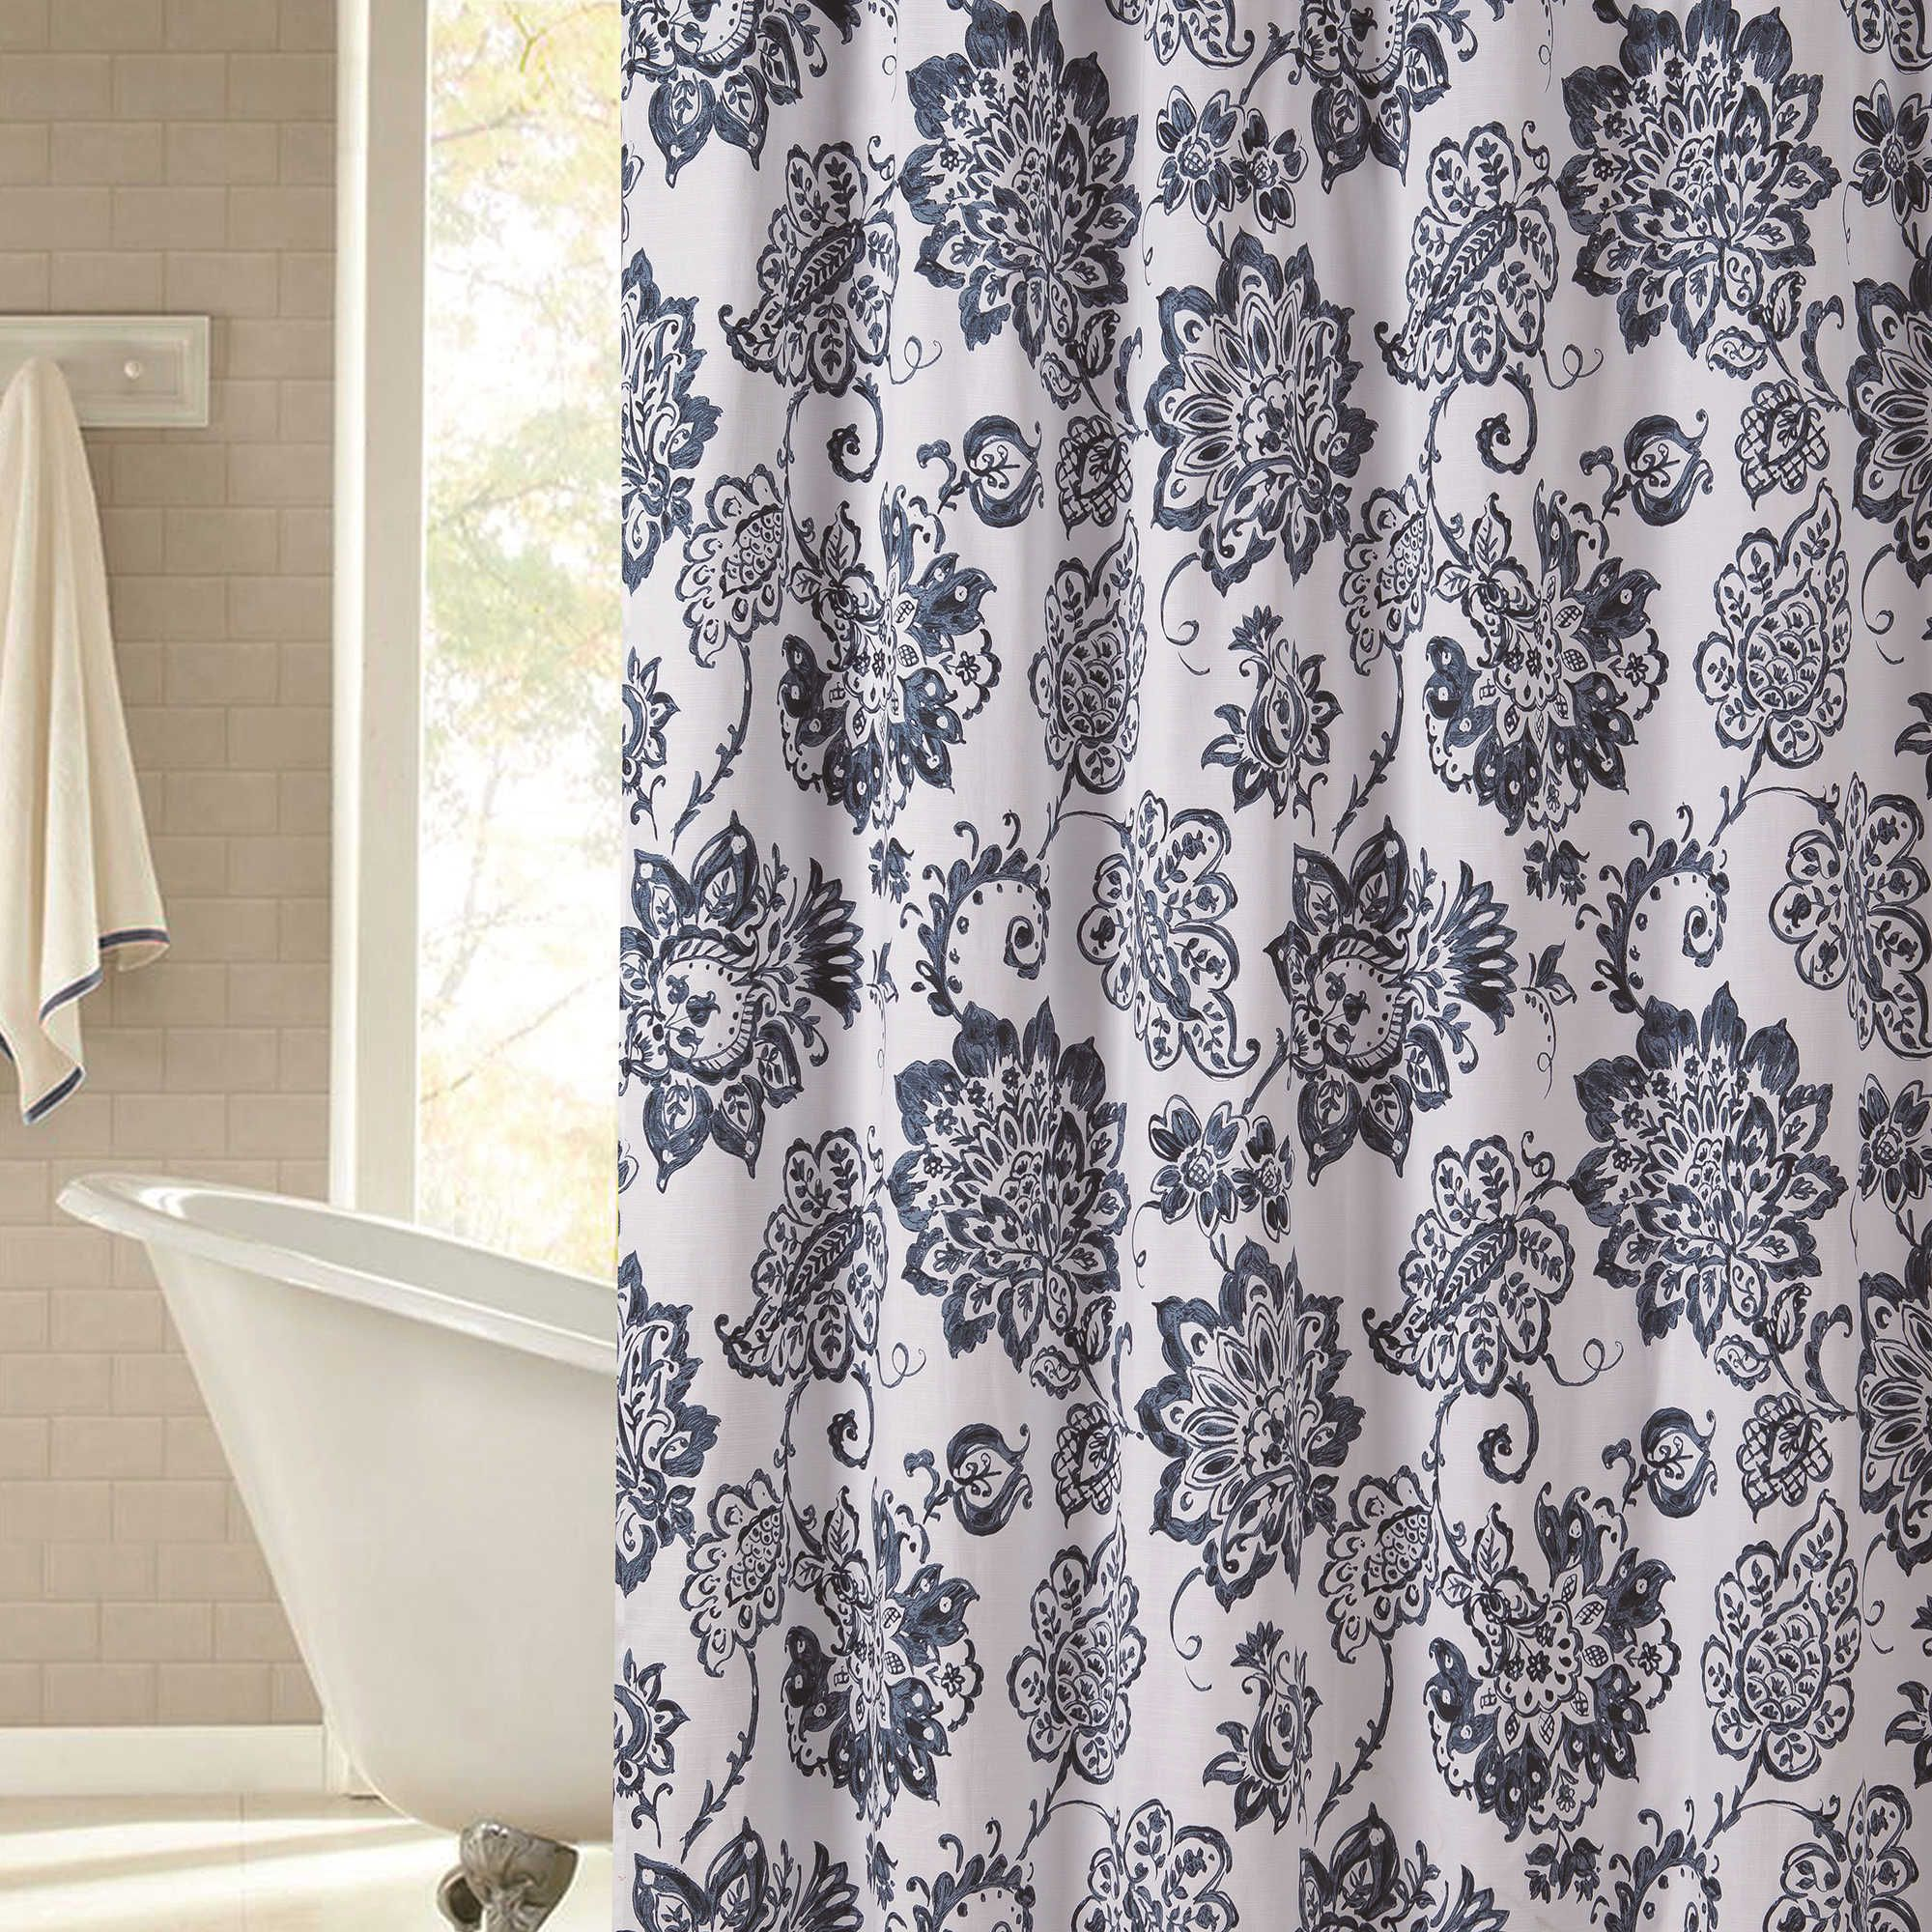 Avignon 72 Inch X 96 Inch Shower Curtain In Navy 96 Inch Shower Curtain Shower Curtain Paisley Shower Curtain